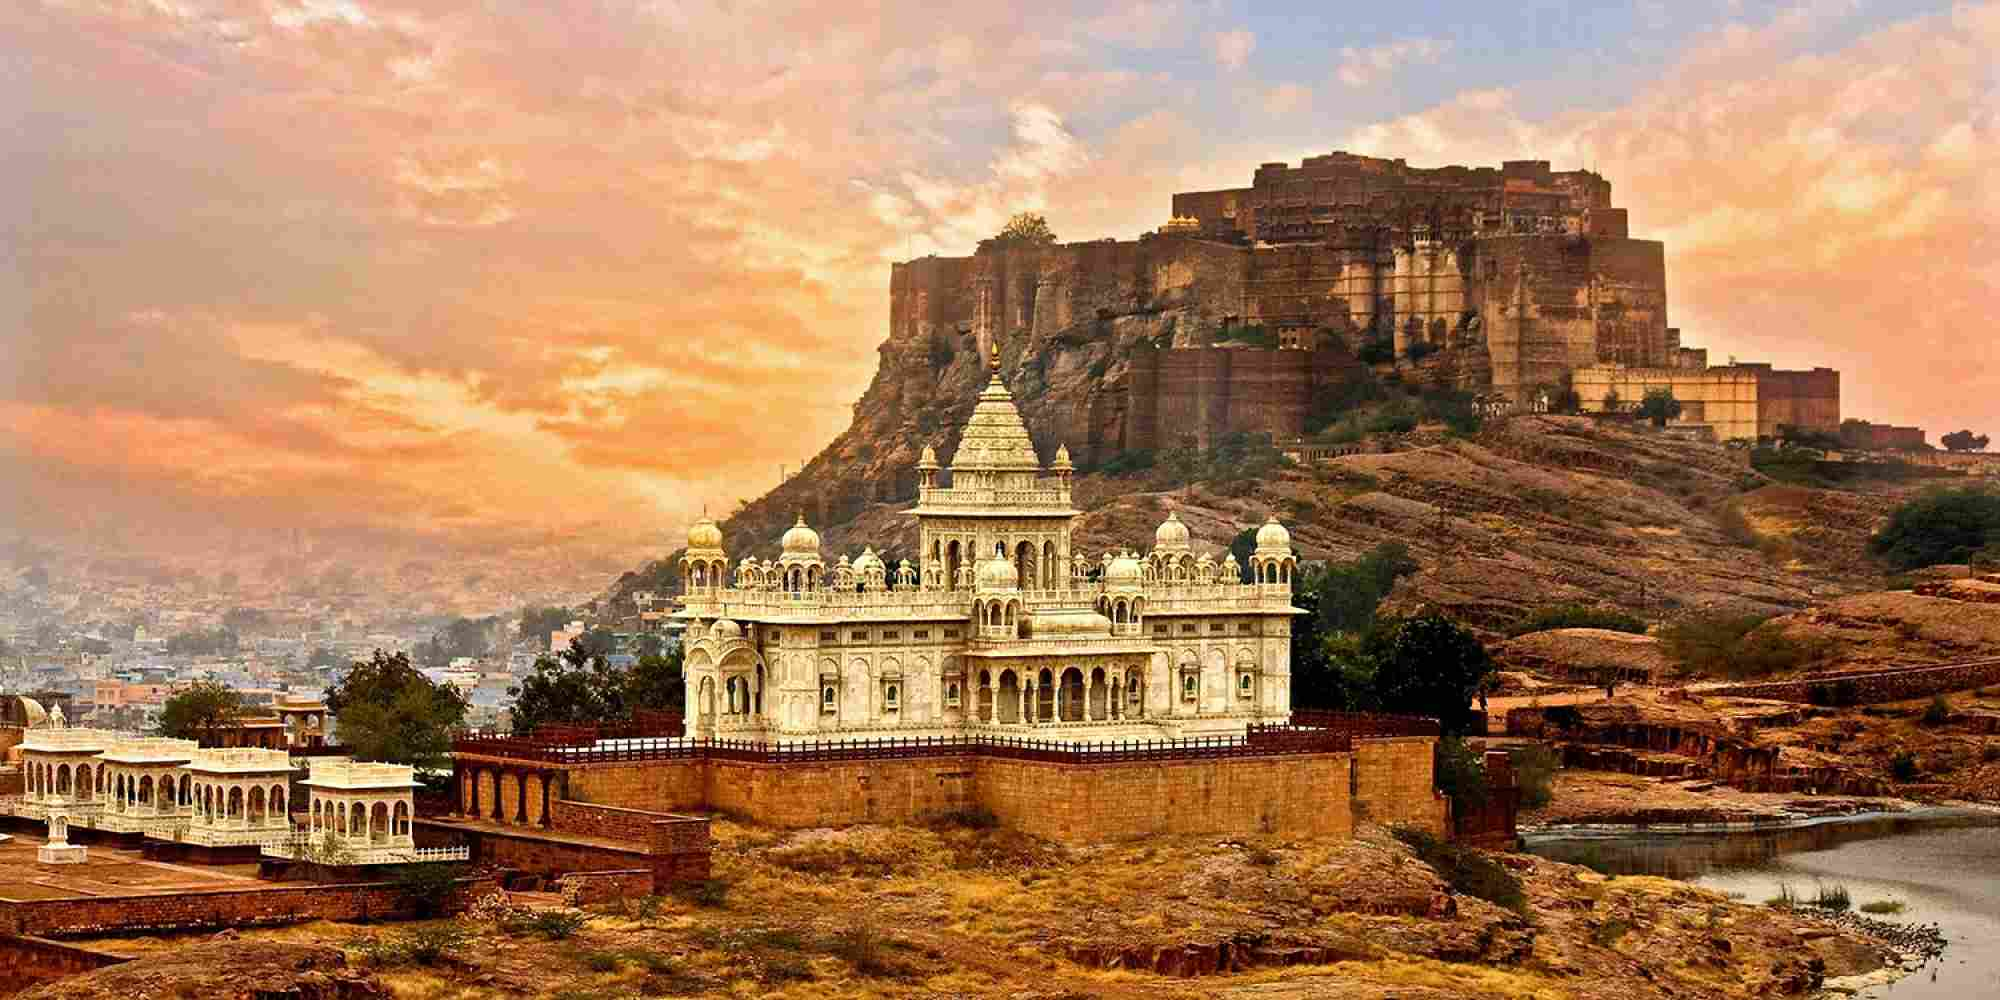 Rajasthan, Jodhpur, most attractive tourist spot,